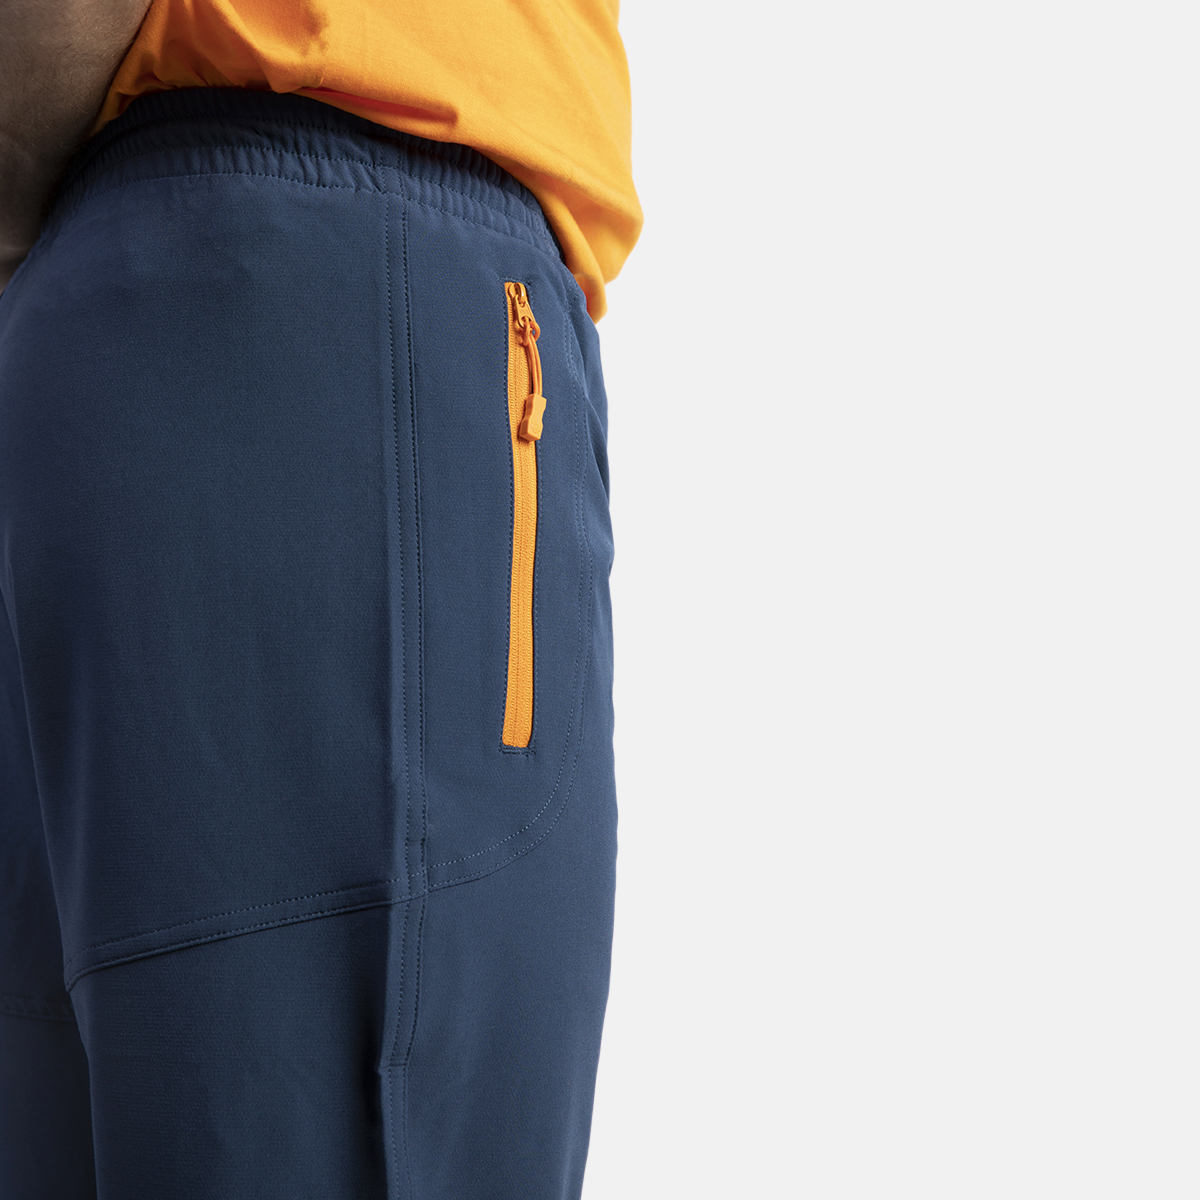 MAN'S CLOISTER MOUNT STRETCH PANT BLUE